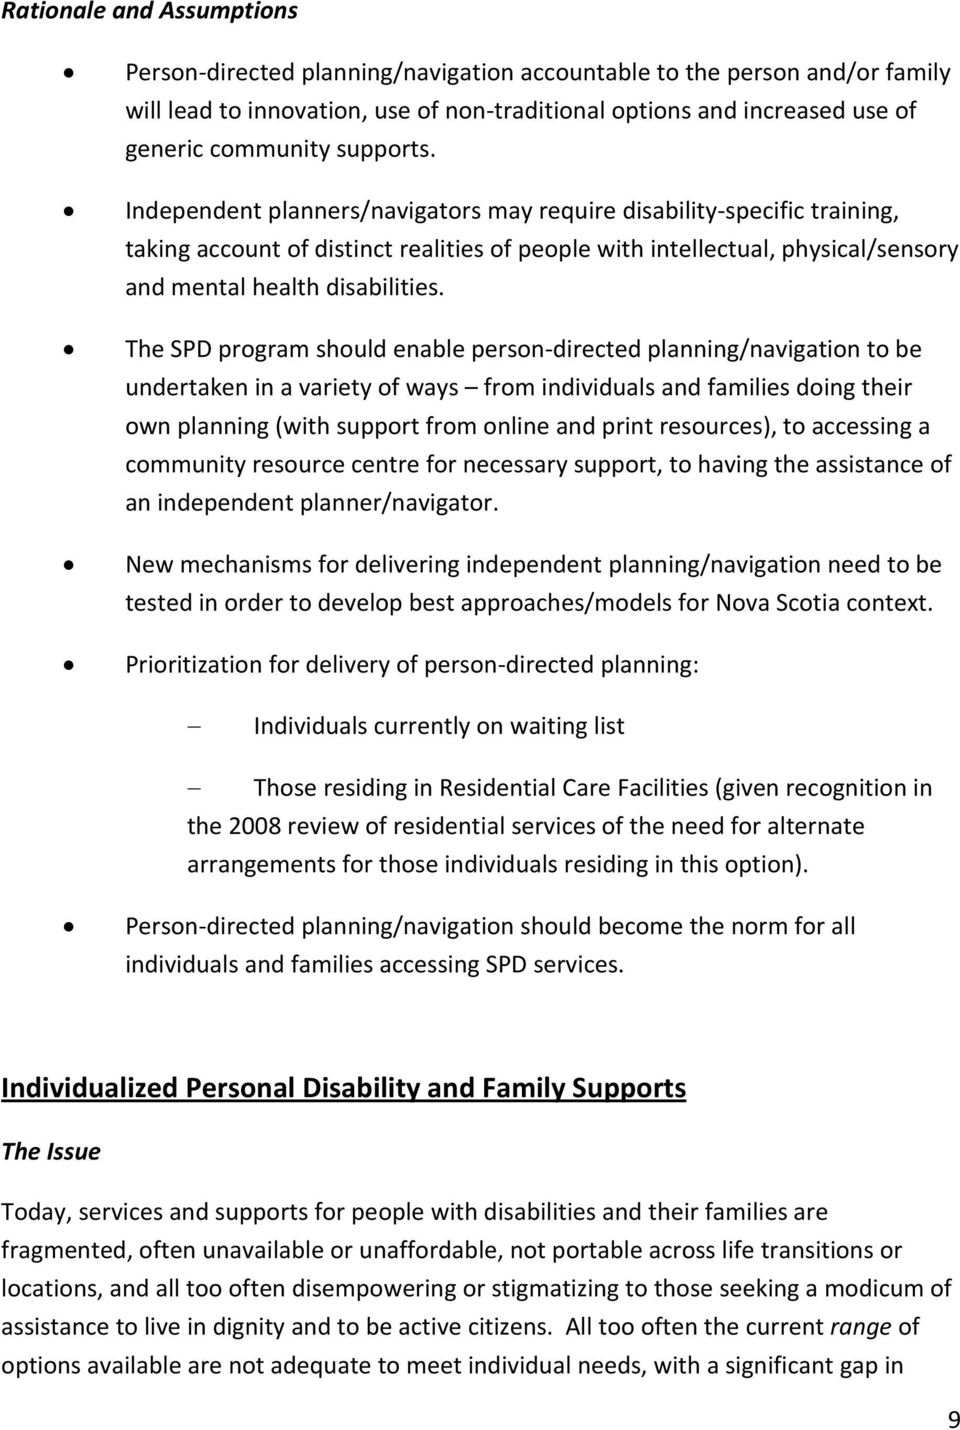 The SPD program should enable person directed planning/navigation to be undertaken in a variety of ways from individuals and families doing their own planning (with support from online and print